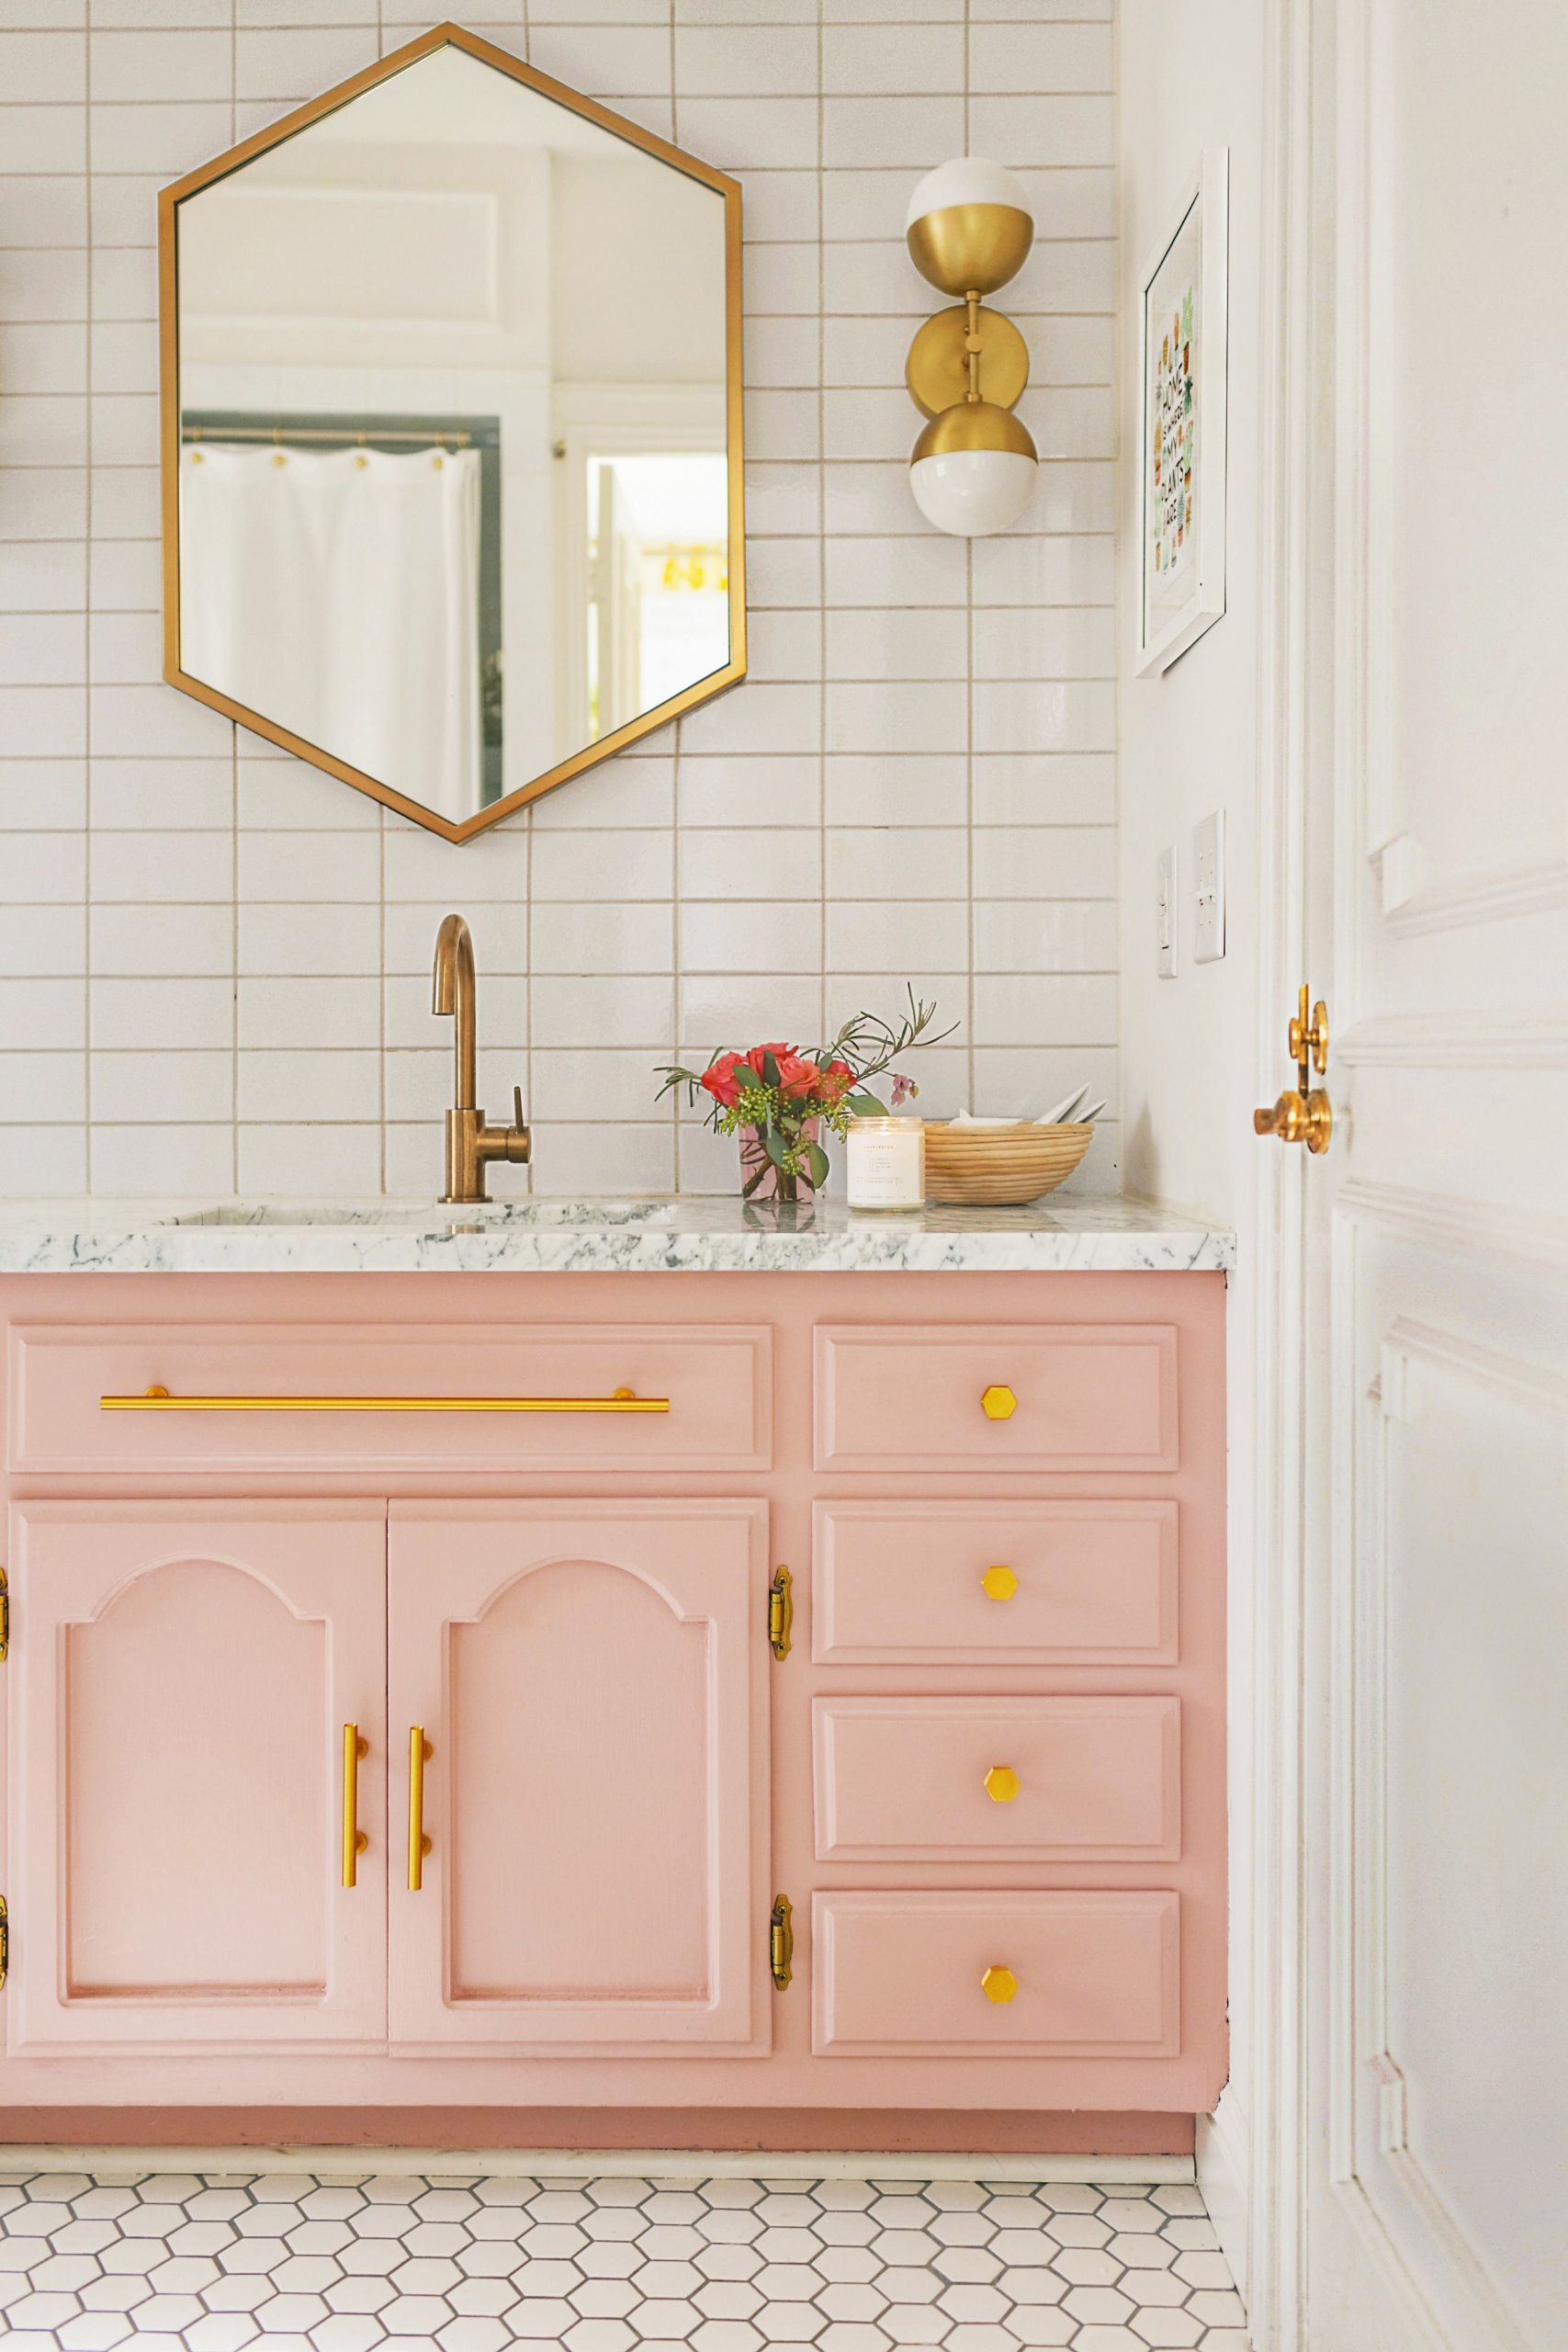 decorating small bathrooms ideas bathroom images for christmas with wallpaper designing diy awesome pictures of scaled